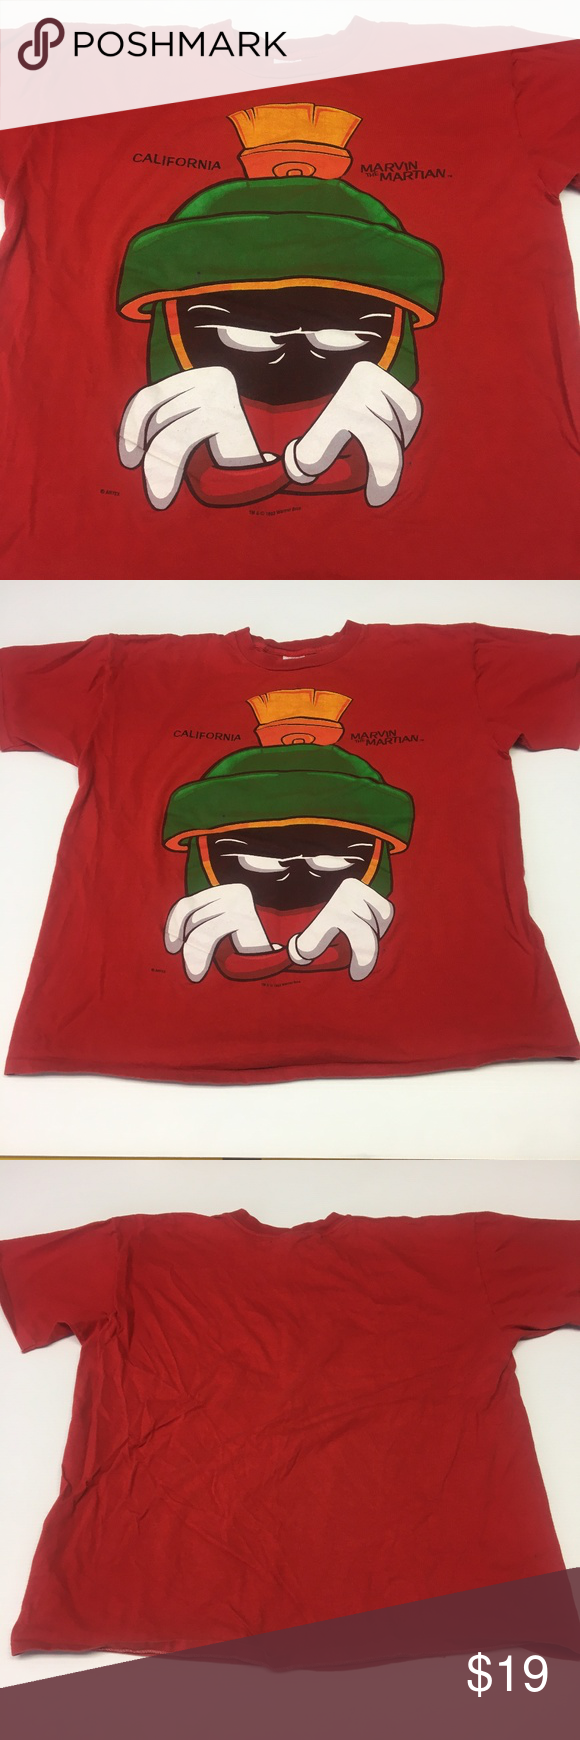 36f83b33d California Marvin the Martian T Shirt Vintage XL California Marvin the Martian  T Shirt Vintage 1993 Warner Bros. Graphic Tee Mens Womens Unisex Adult Size  ...